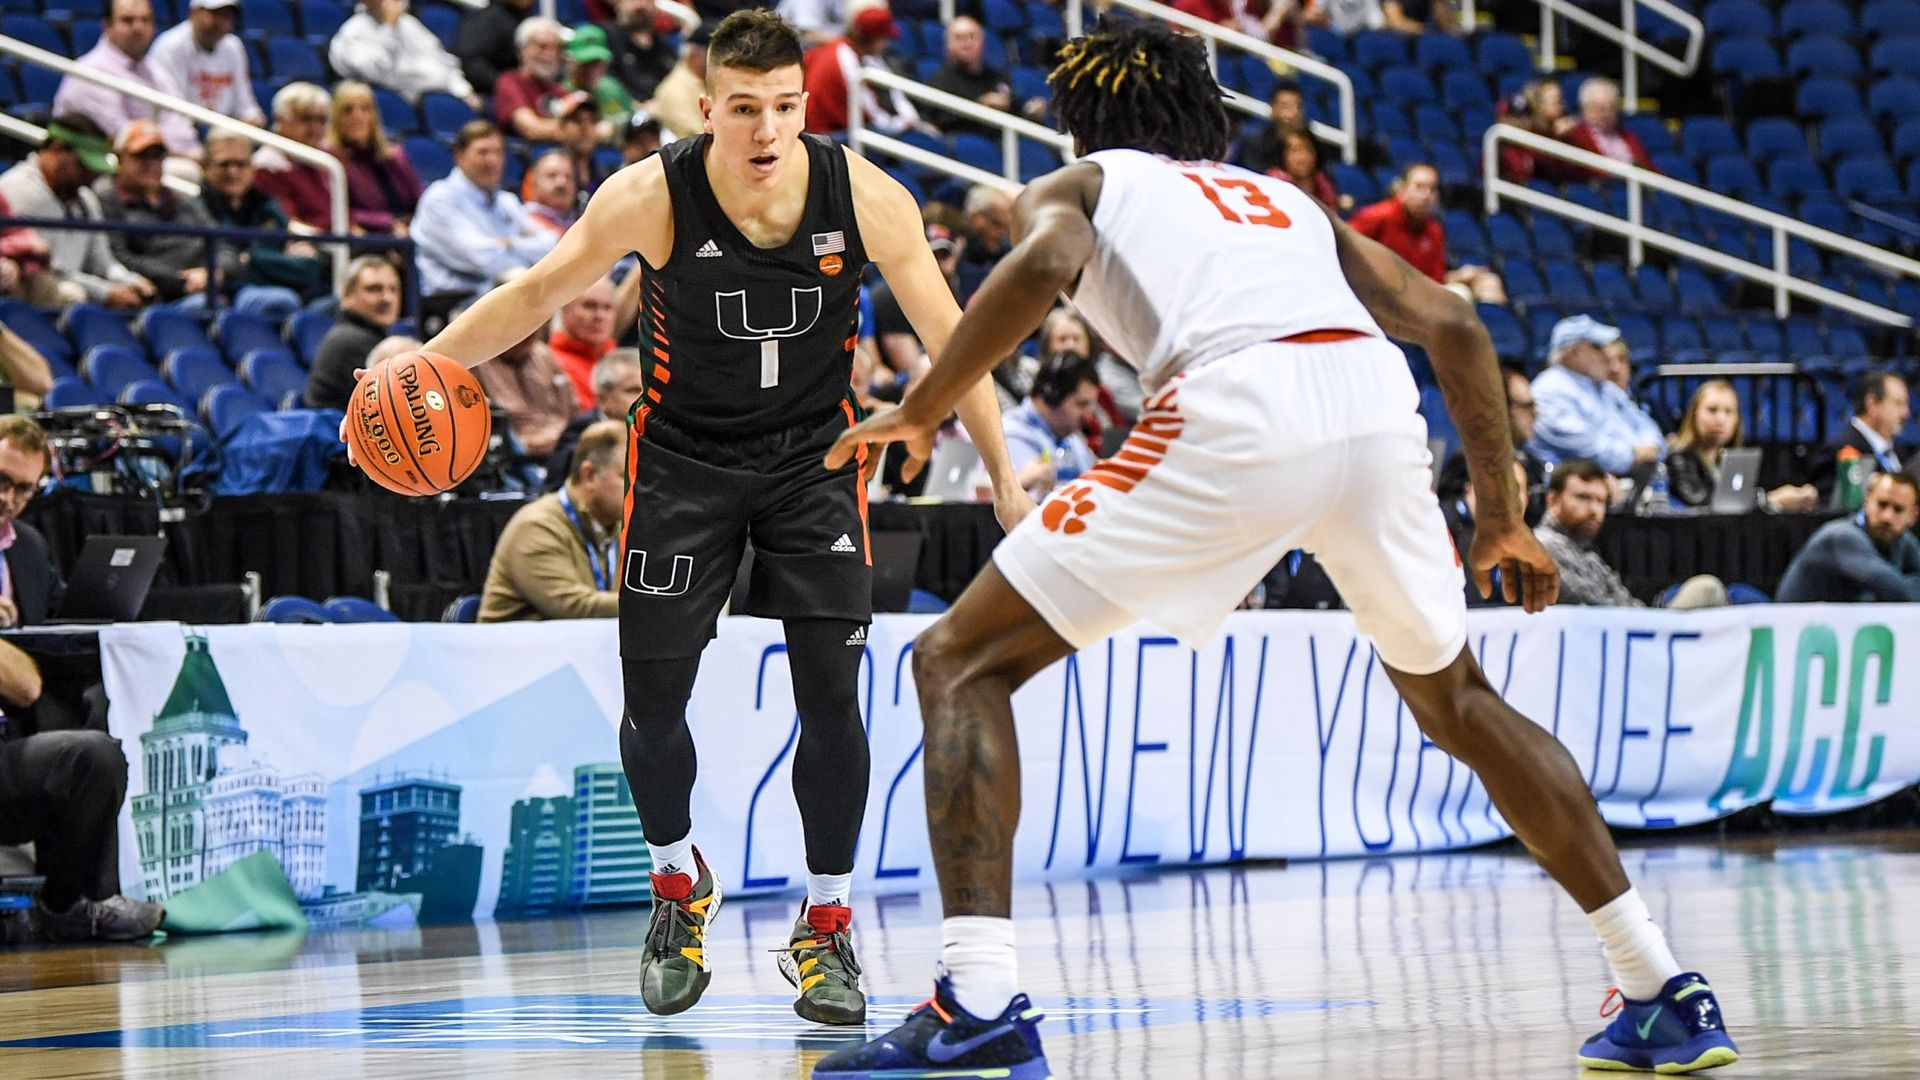 MBB Falls to Clemson, 69-64, in ACC Tournament